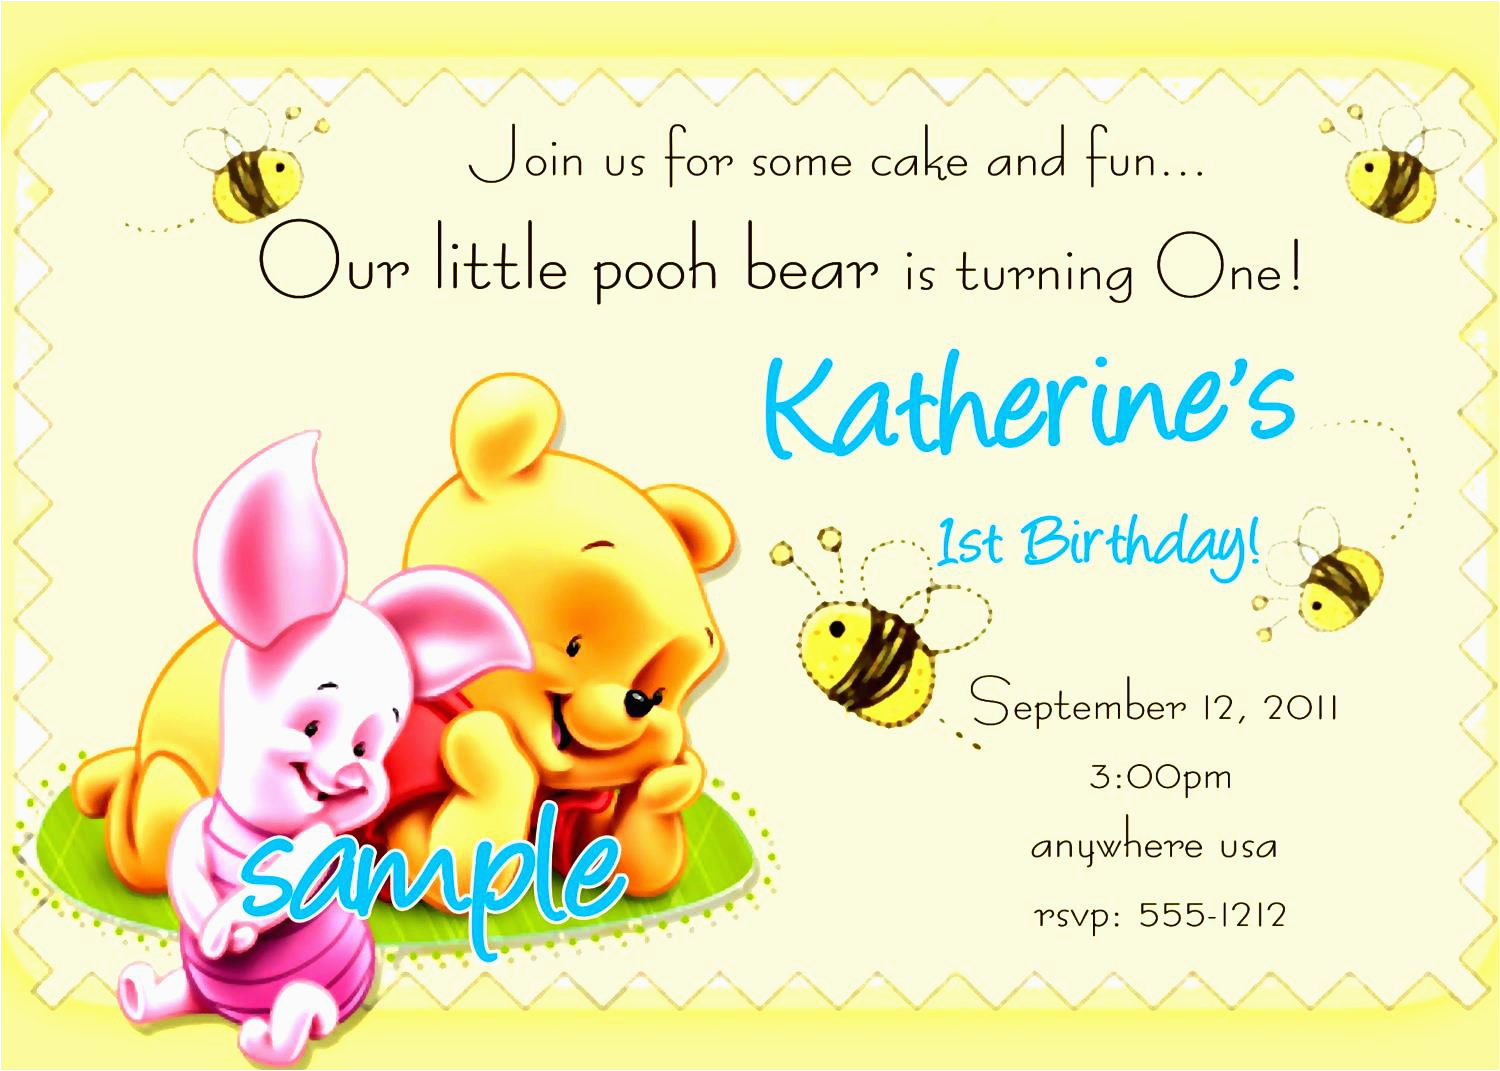 Invitation Card For Birthday Party Online 21 Kids Wording That We Can Make